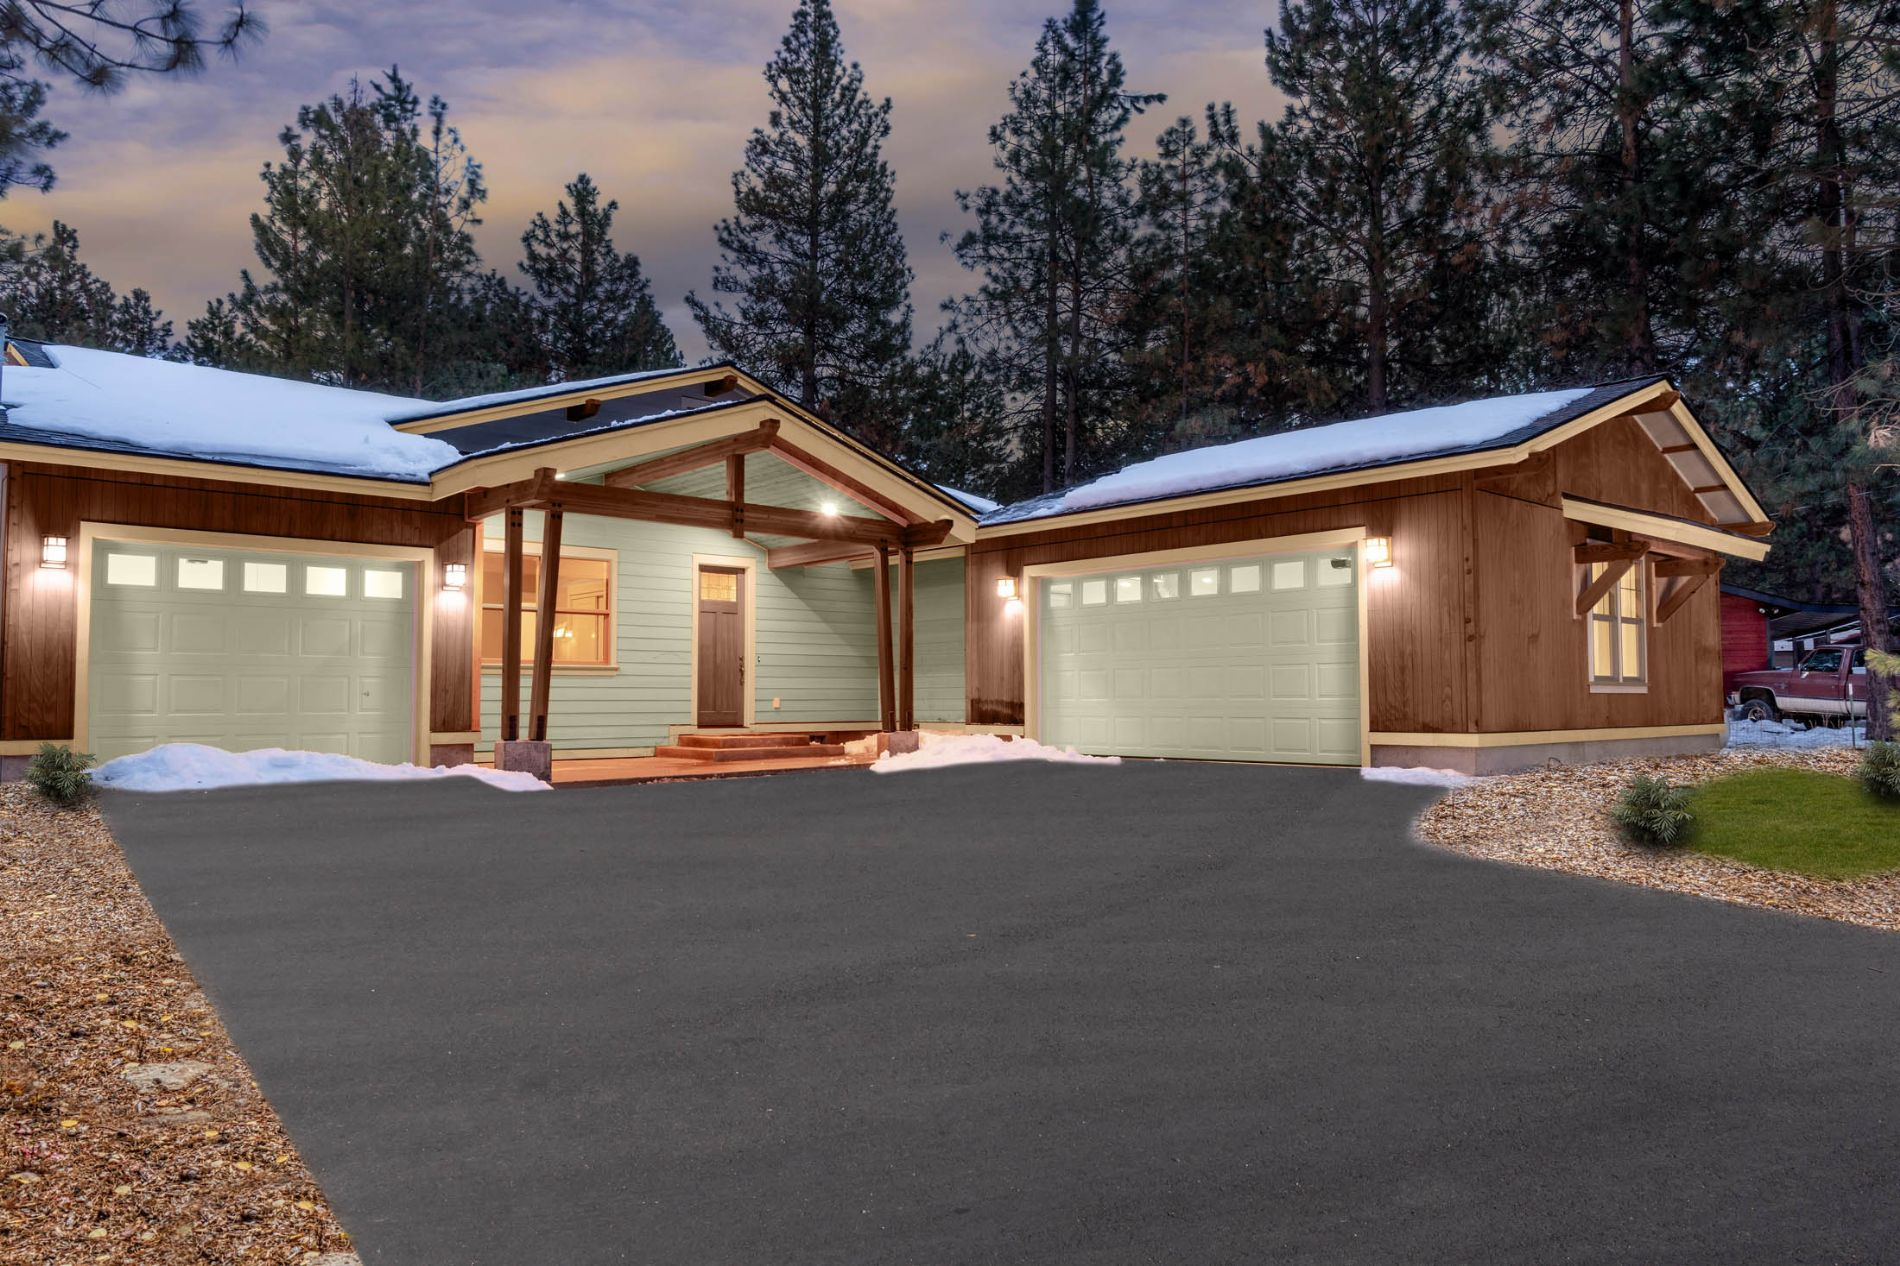 For Sale By Builder New Home 60610 River Bend Dr Bend Or